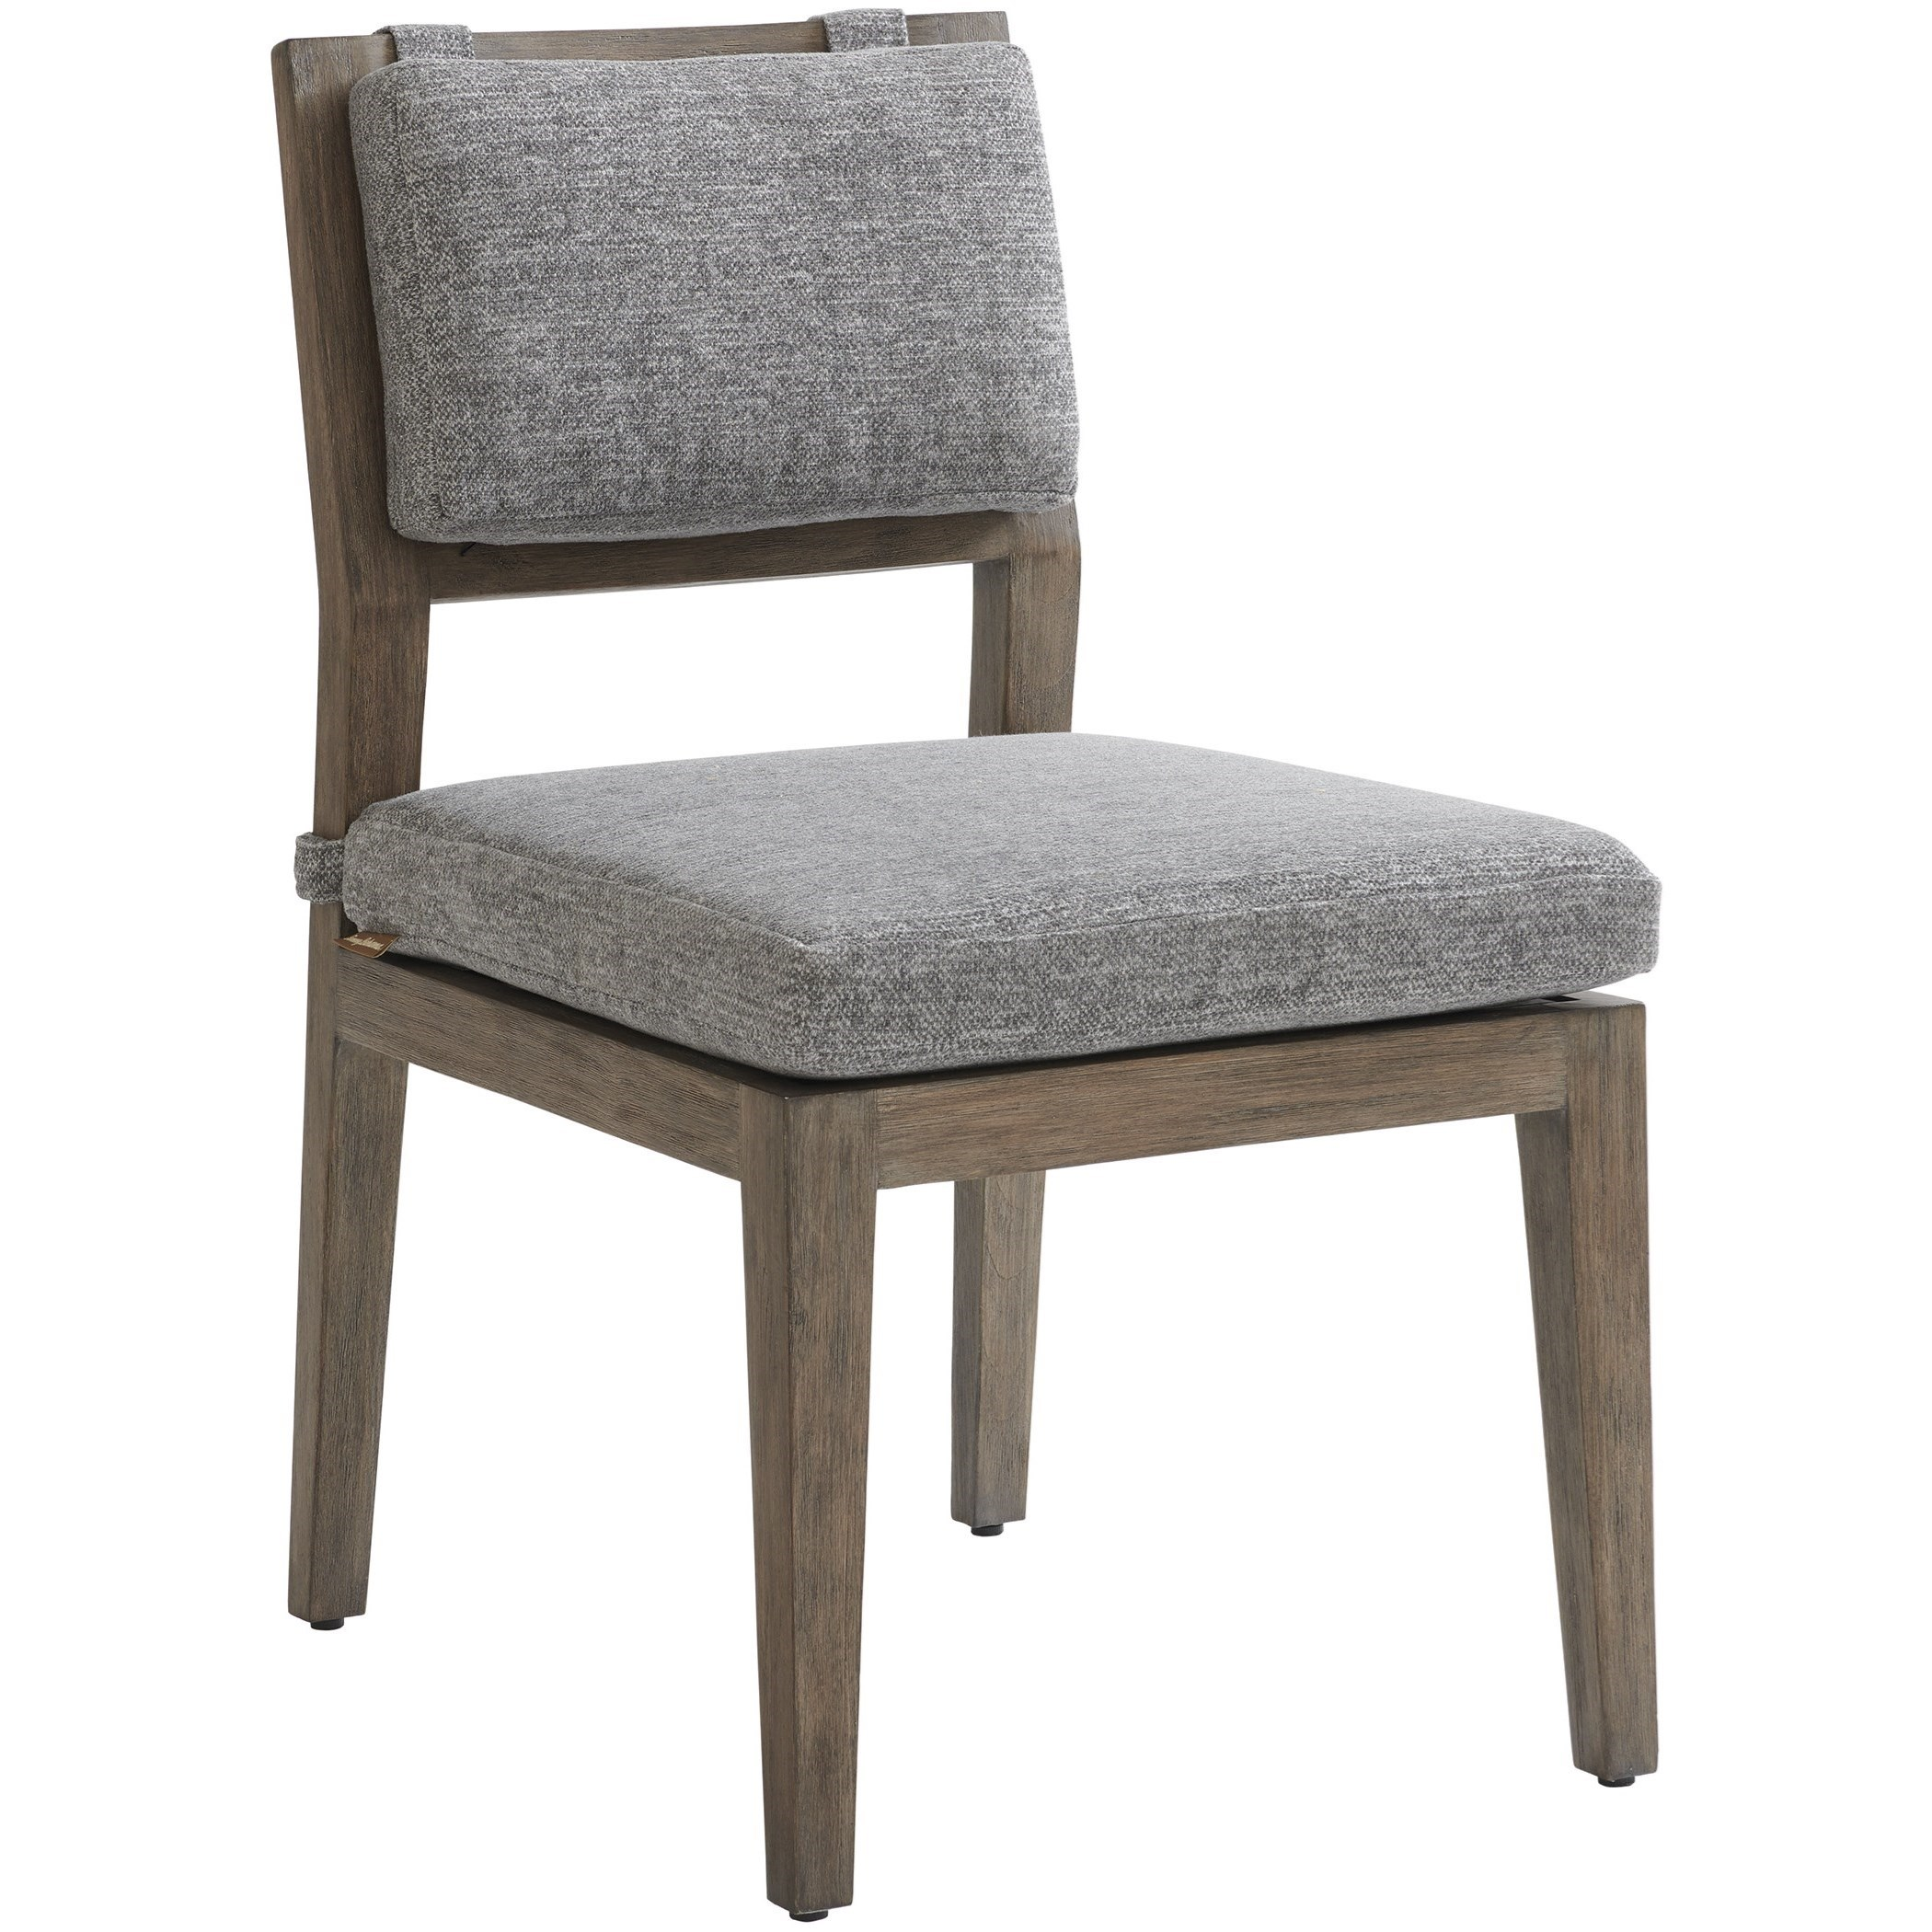 La Jolla Side Dining Chair by Tommy Bahama Outdoor Living at Baer's Furniture